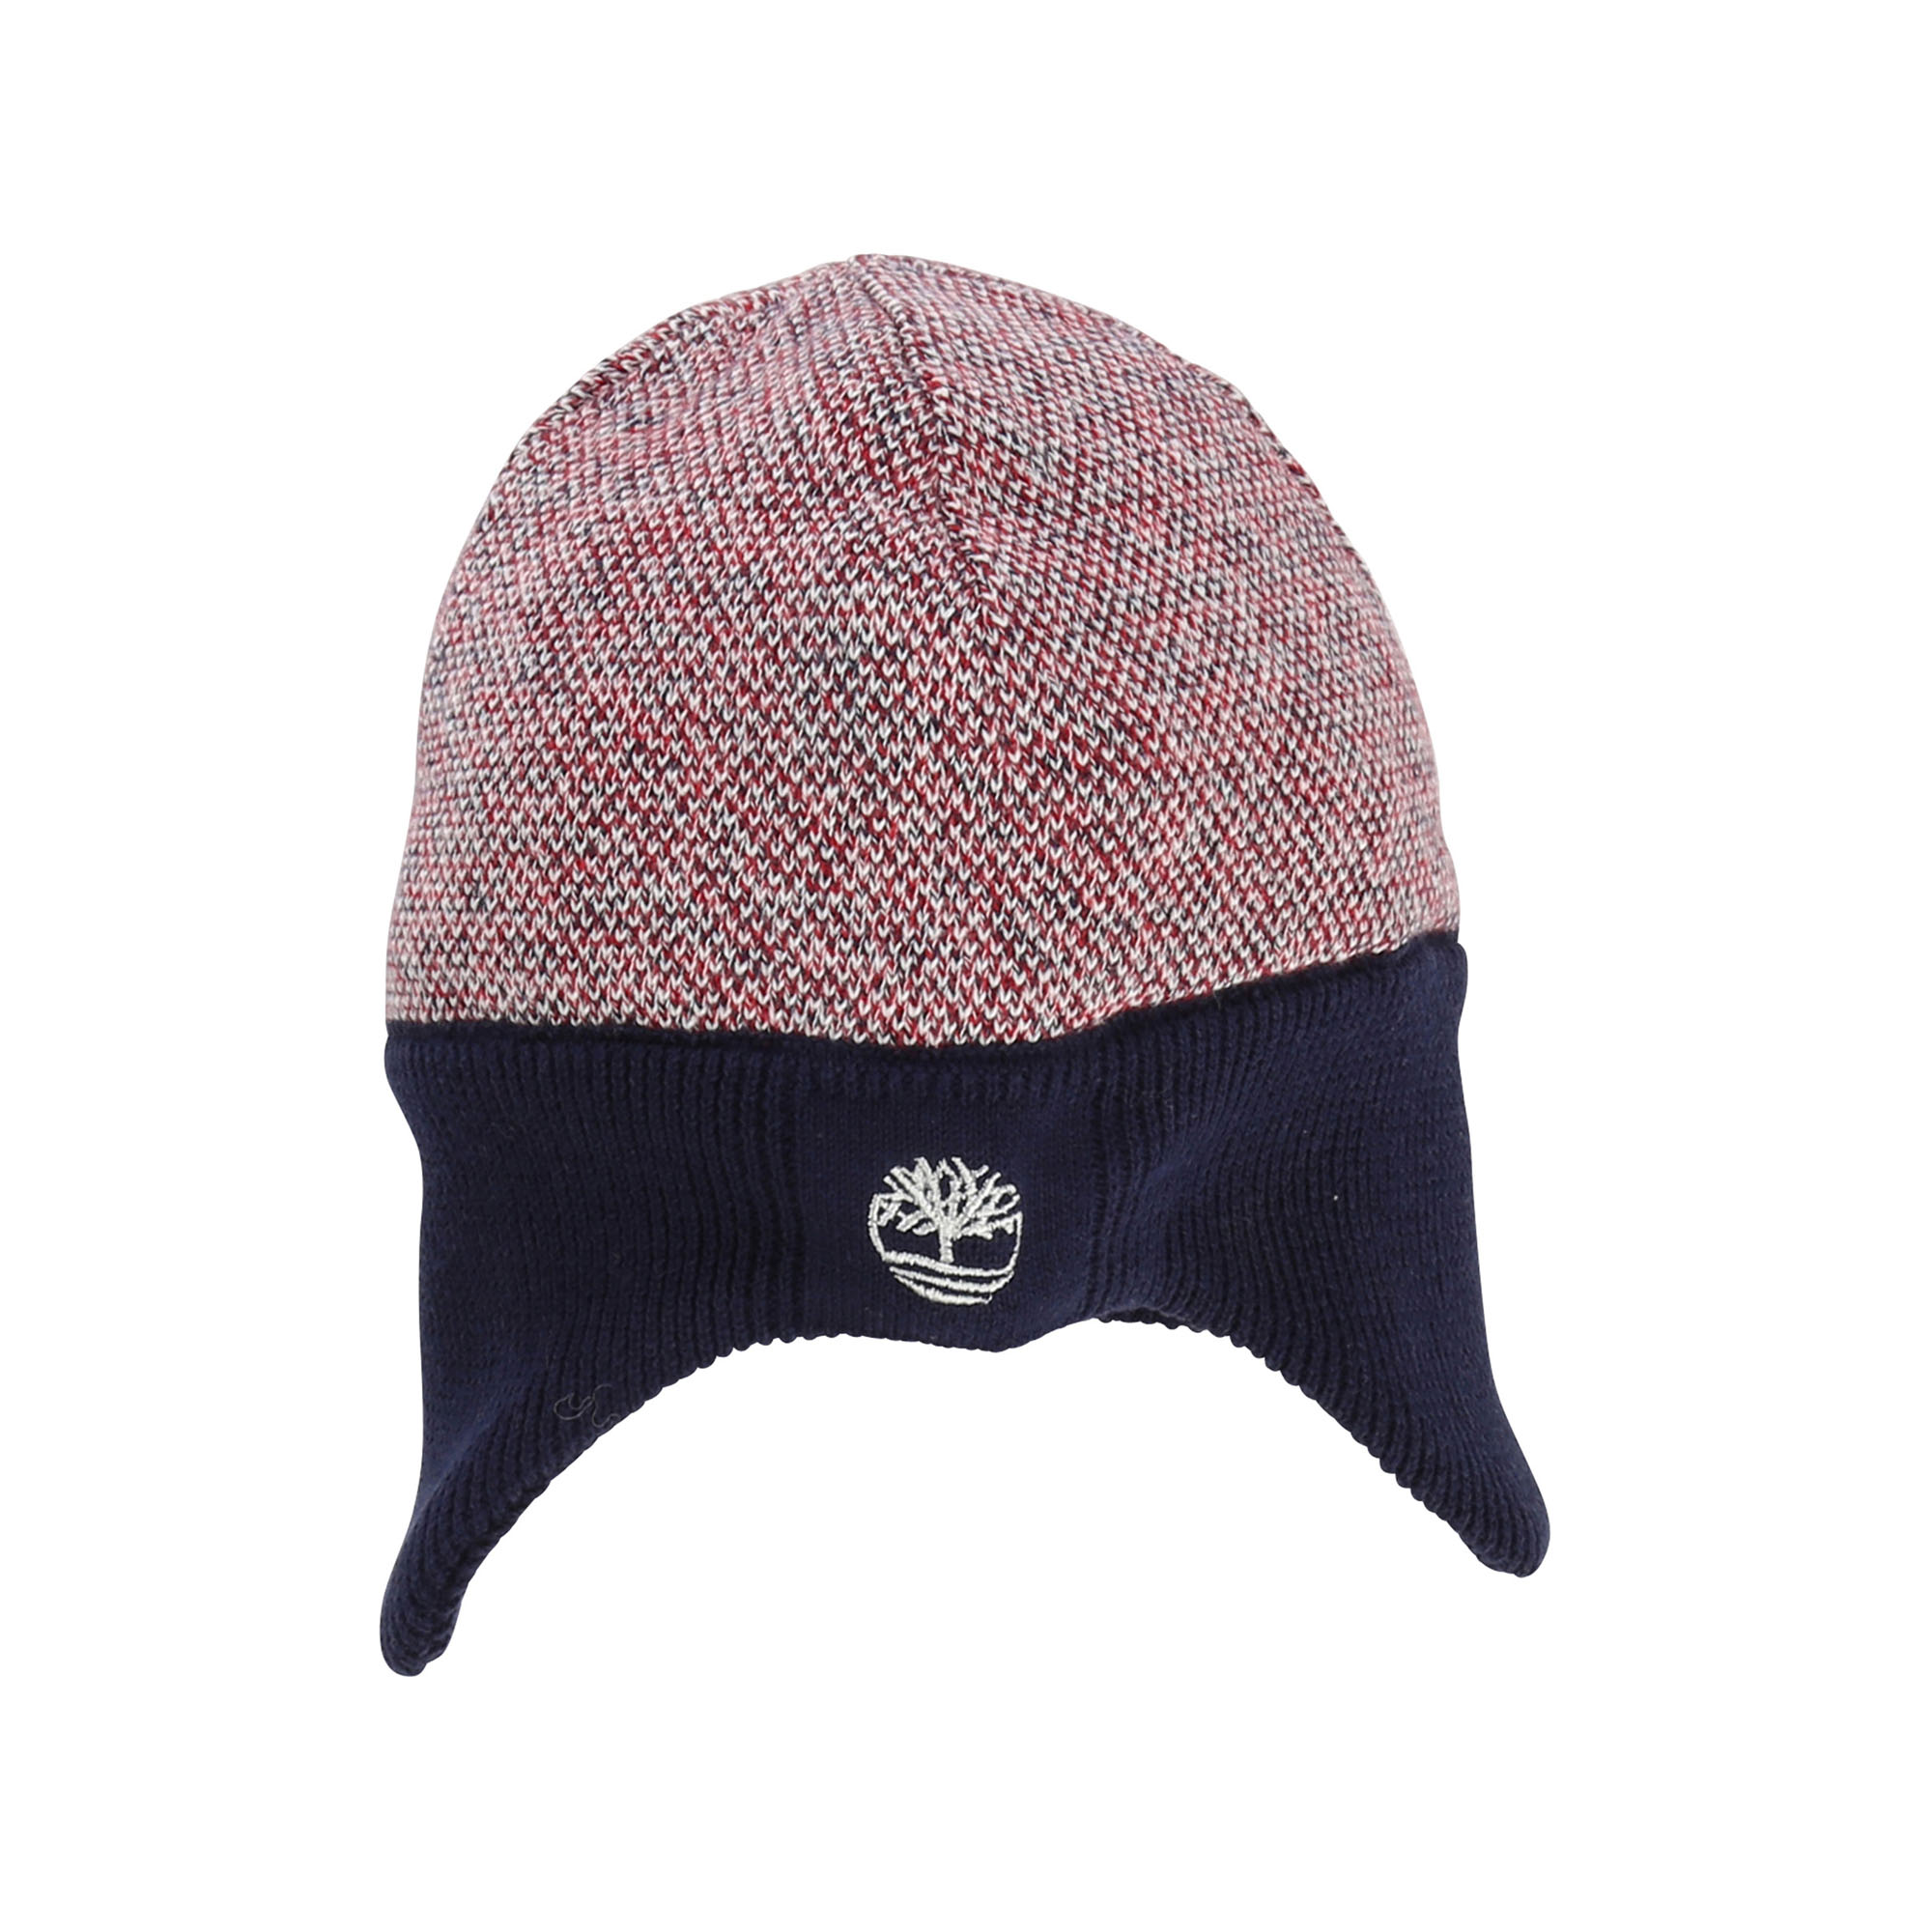 Bicolor pull on hat TIMBERLAND for BOY